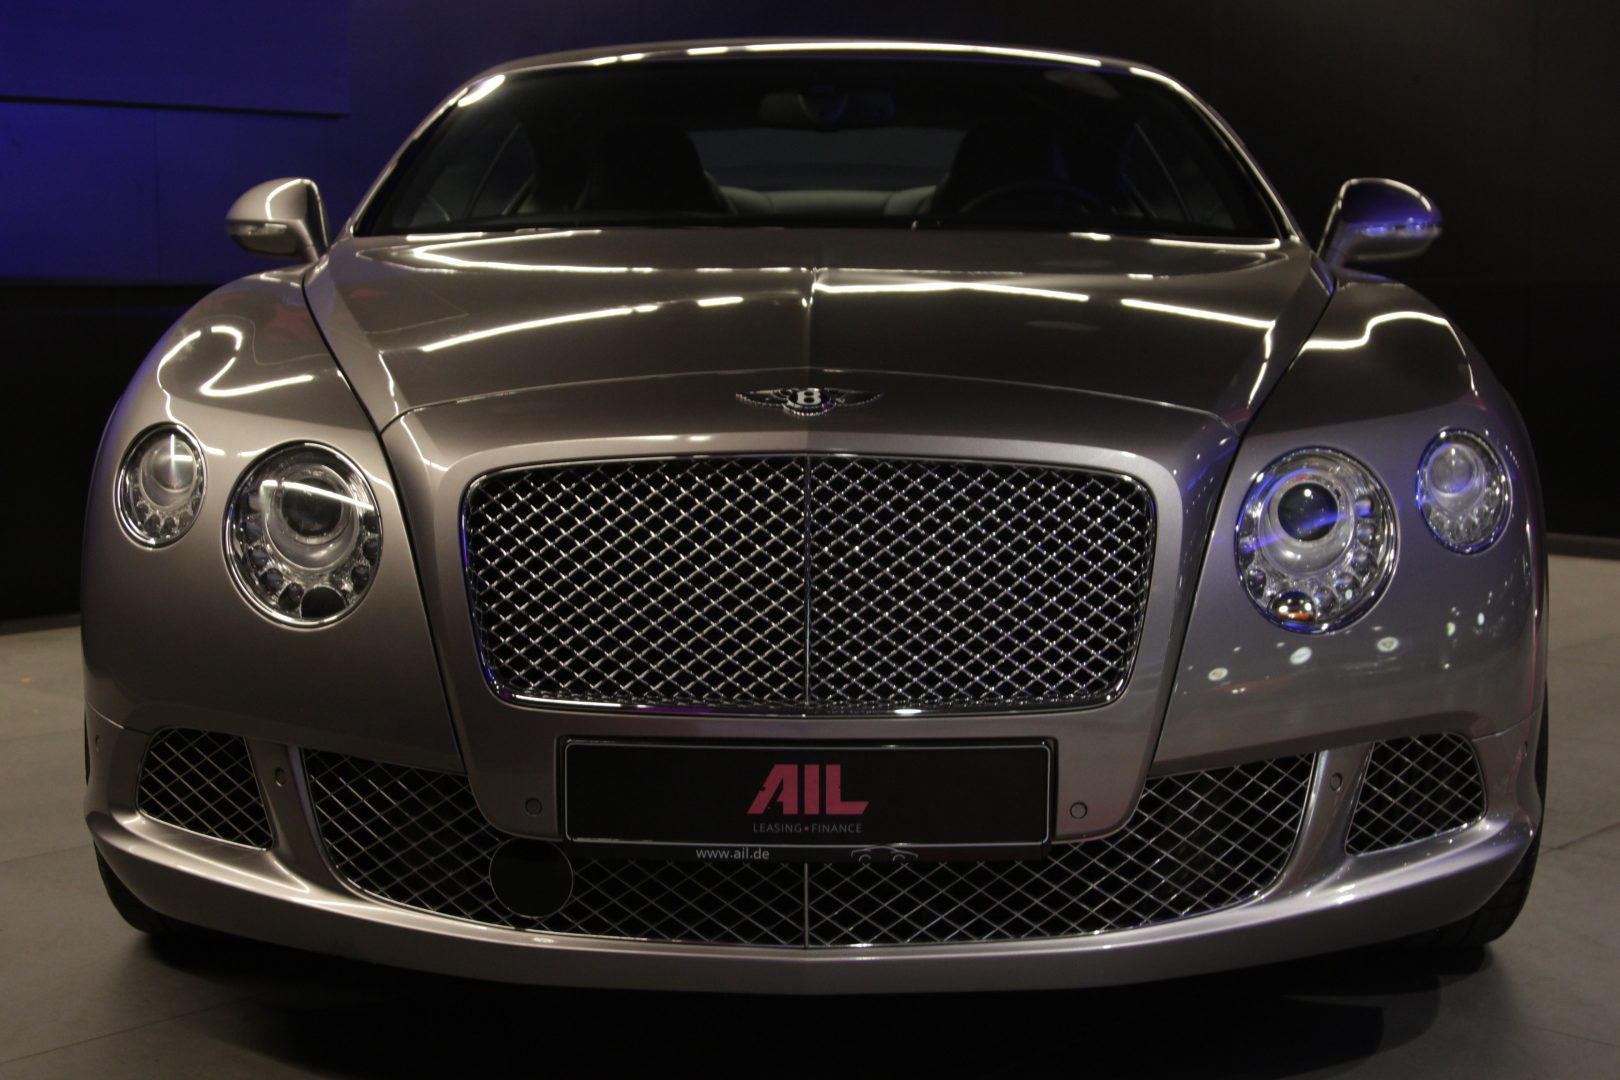 AIL Bentley Continental GT 6.0 W12 2